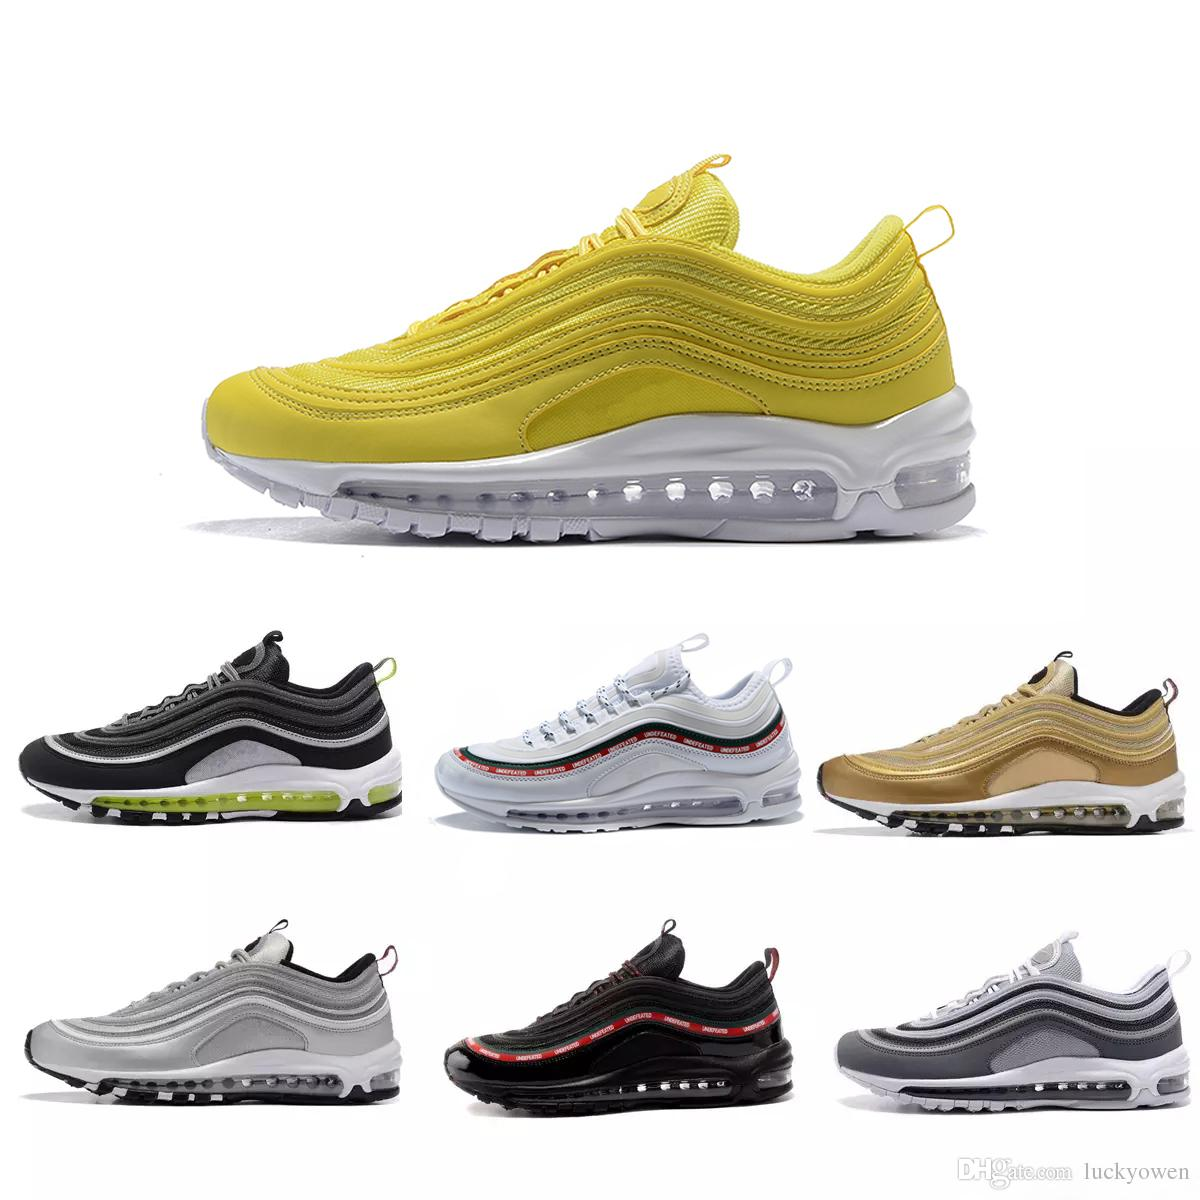 pretty nice df9ad 416f6 2018 Anniversary Edition Running 97s triple Black White Og Metallic Gold  Silver Bullet Trainer X Undftd Speed 97 OS Men women Sport Shoes